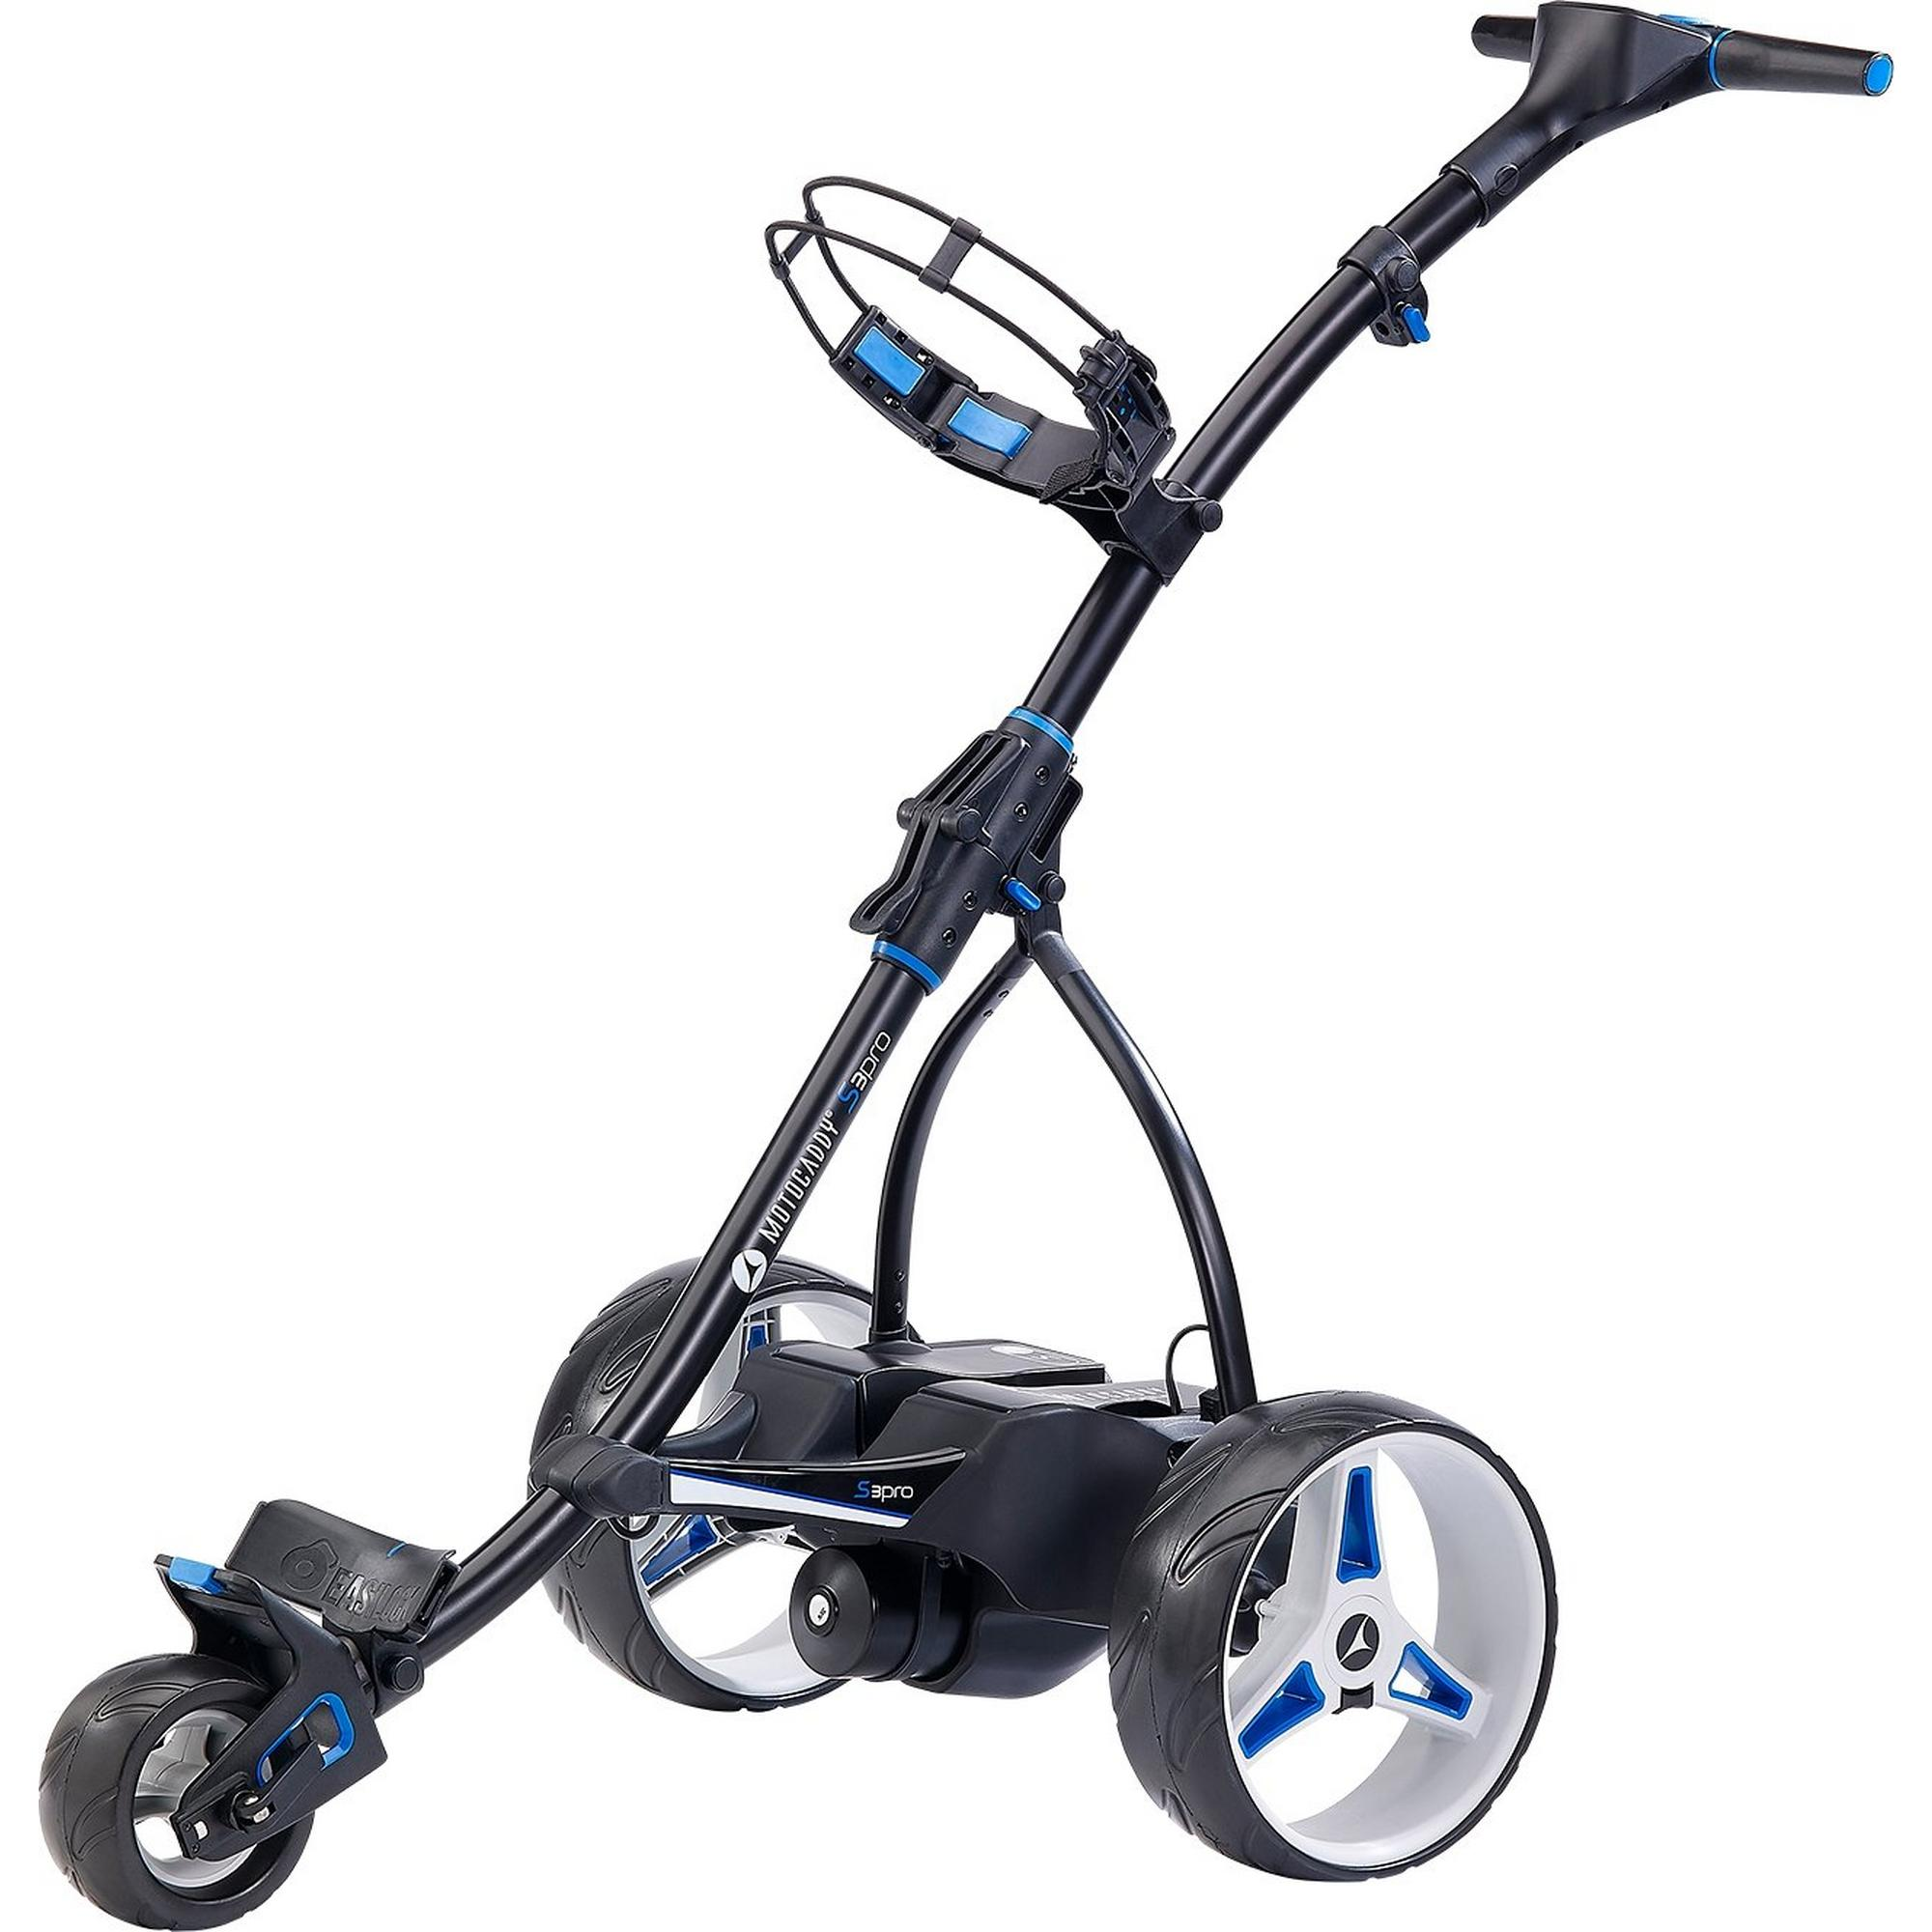 S3 Pro Lithium Electric Cart